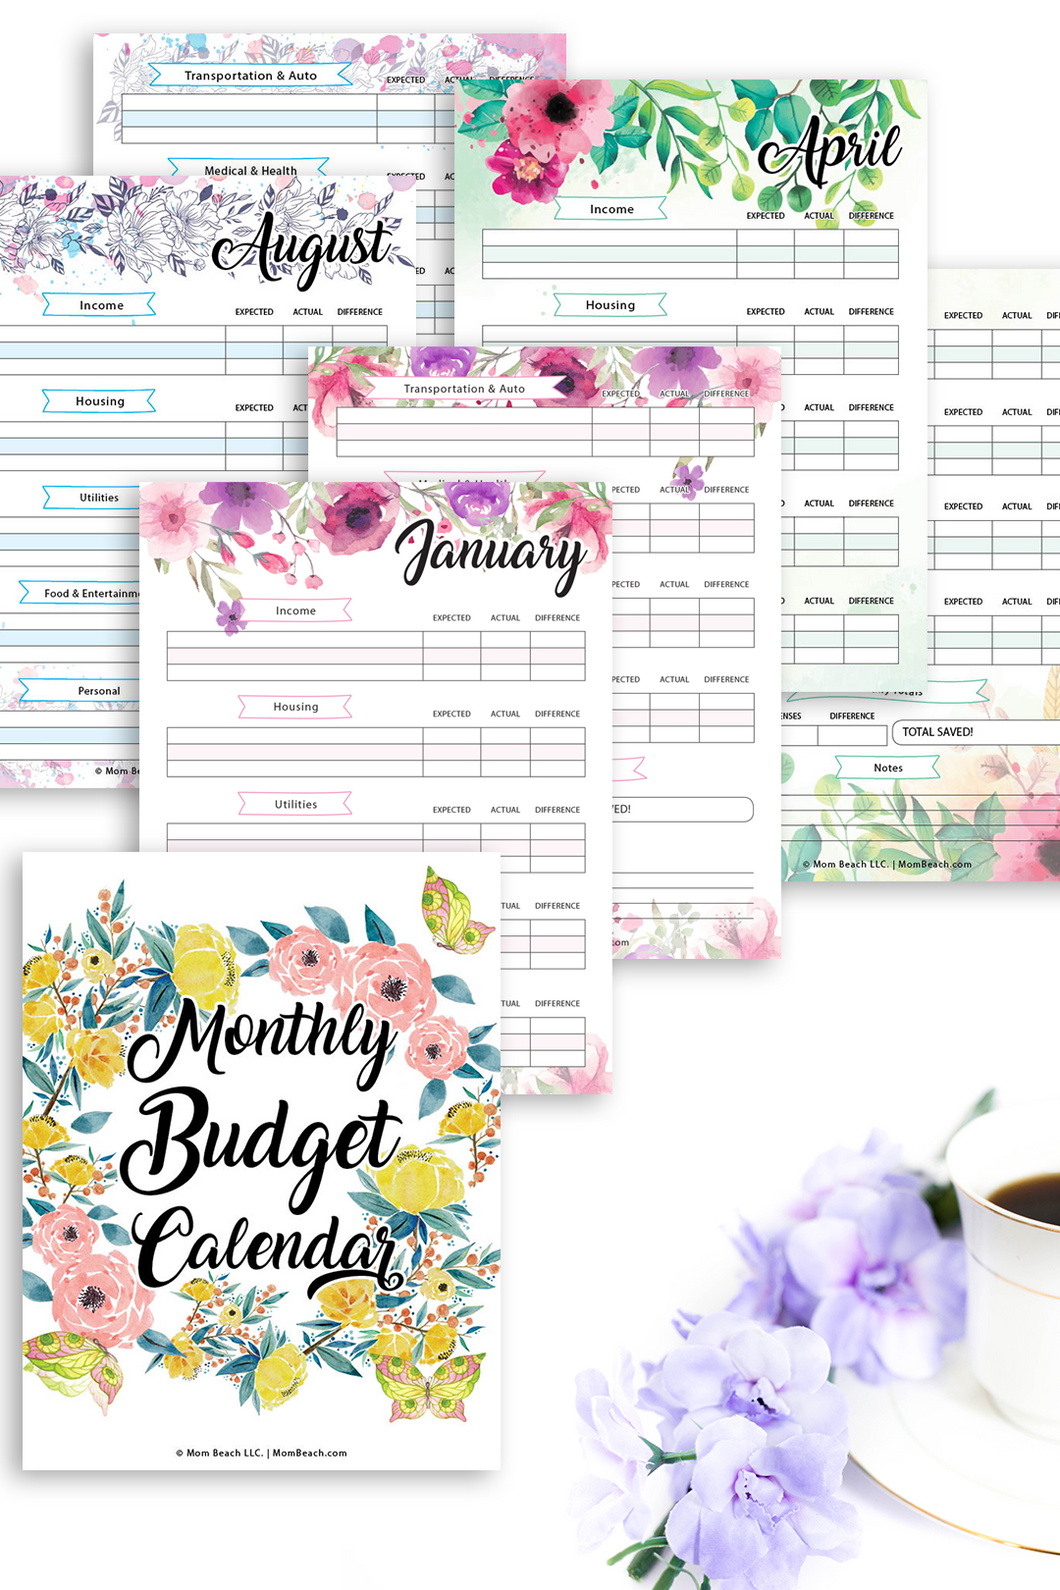 Watercolor Floral Monthly Budget Calendar